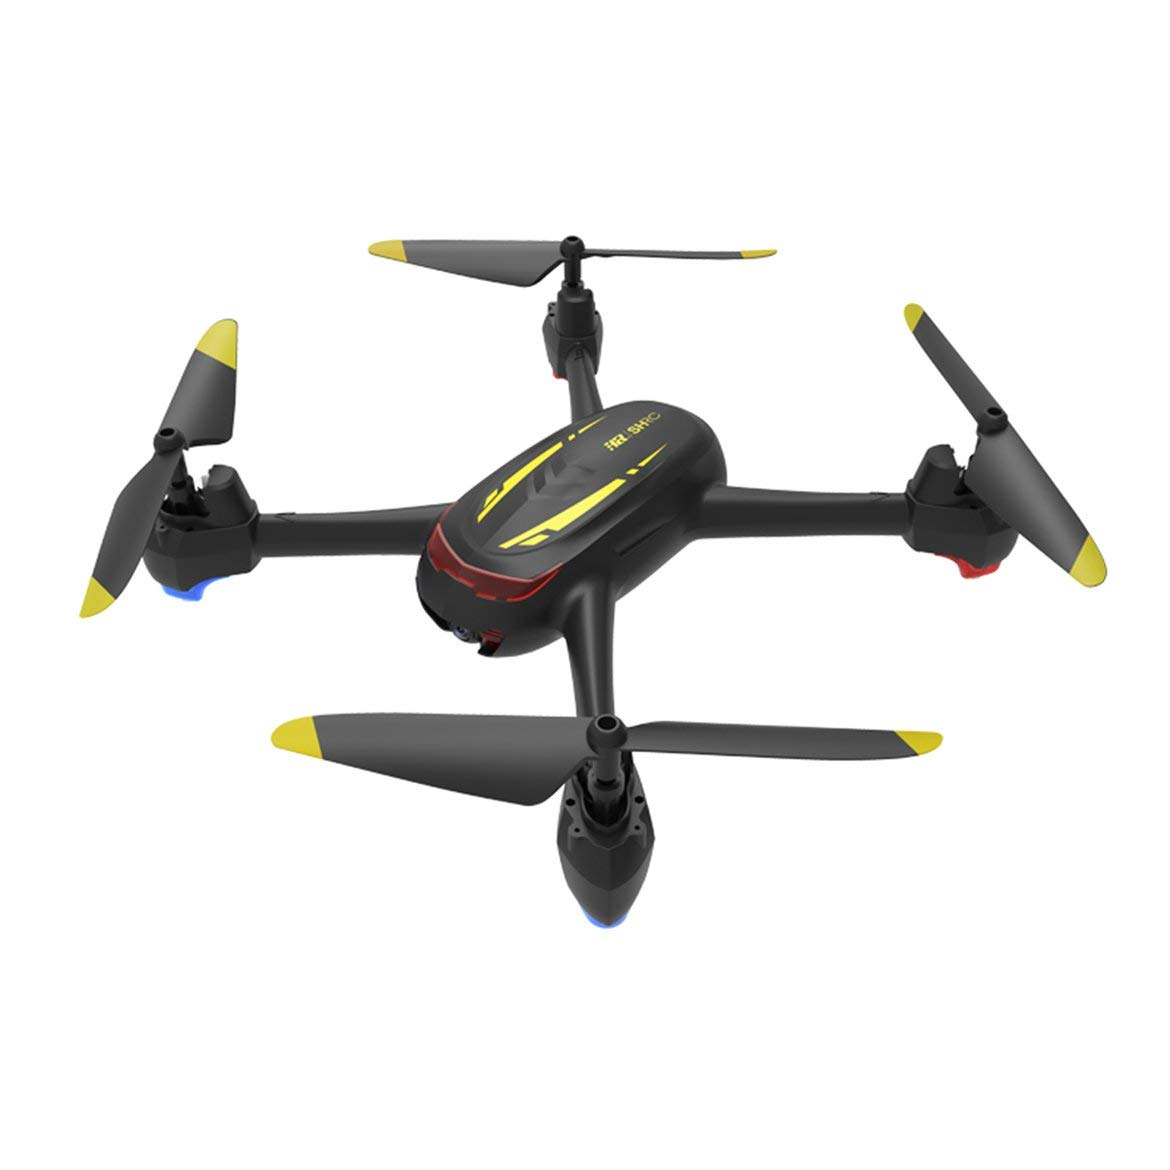 JohnJohnsen SH2 1080P Quadcopter Four-Axis Aircraft 100M Remote Control Distance WiFi Drone Aircraft Aerial Drone(Black): Amazon.es: Juguetes y juegos